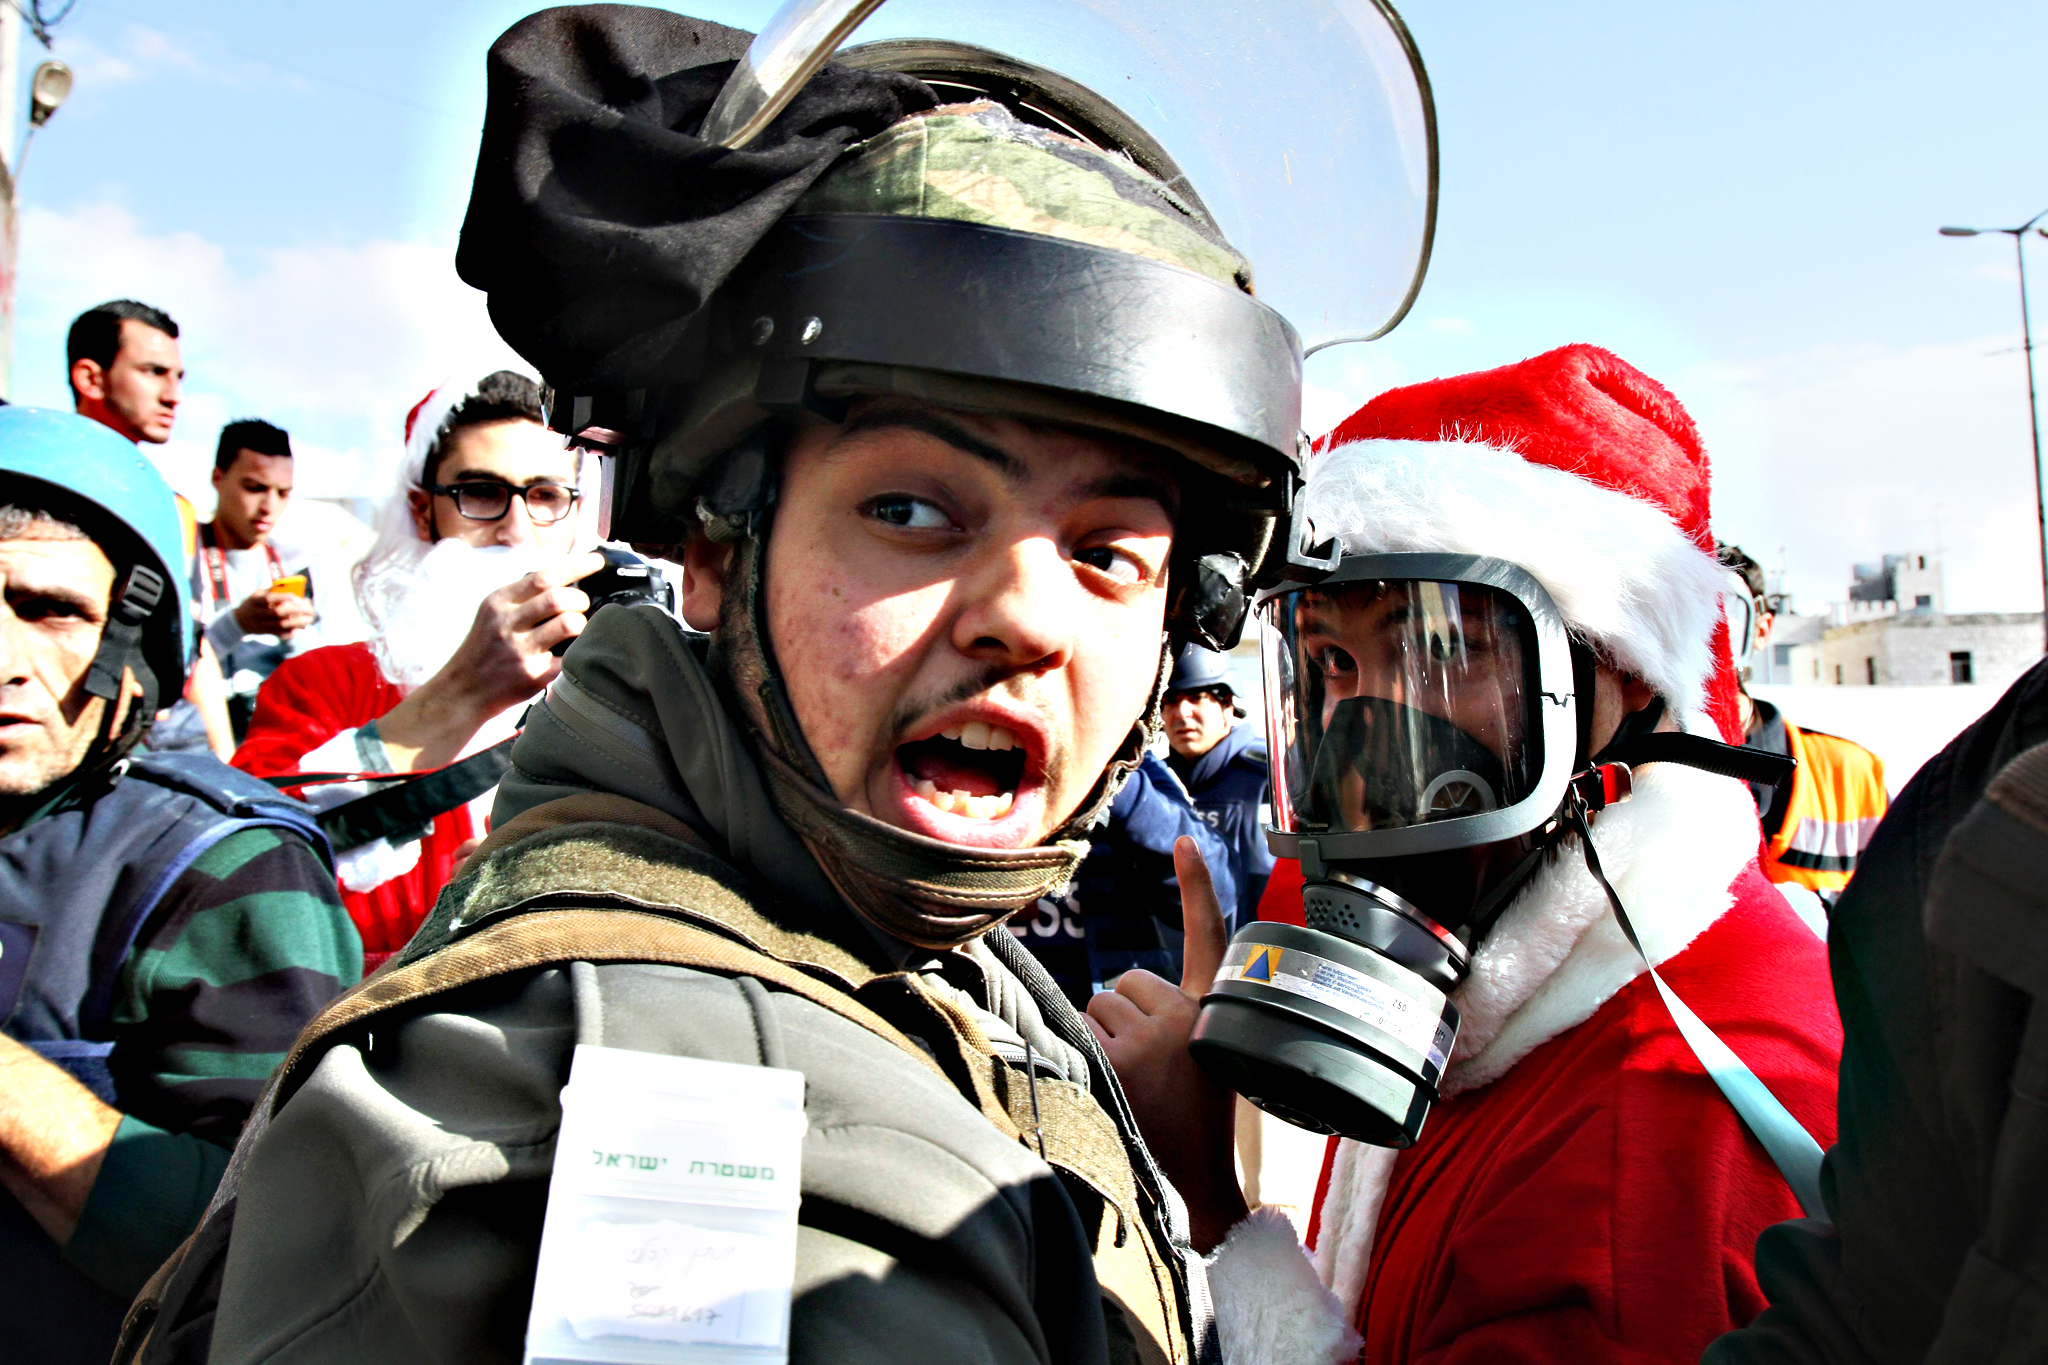 A Palestinian dressed up as Santa Claus talks to an Israeli soldier during a demonstration in front of a gate along the Israeli controversial separation wall in the West Bank city of Bethlehem, on December 18, 2015.